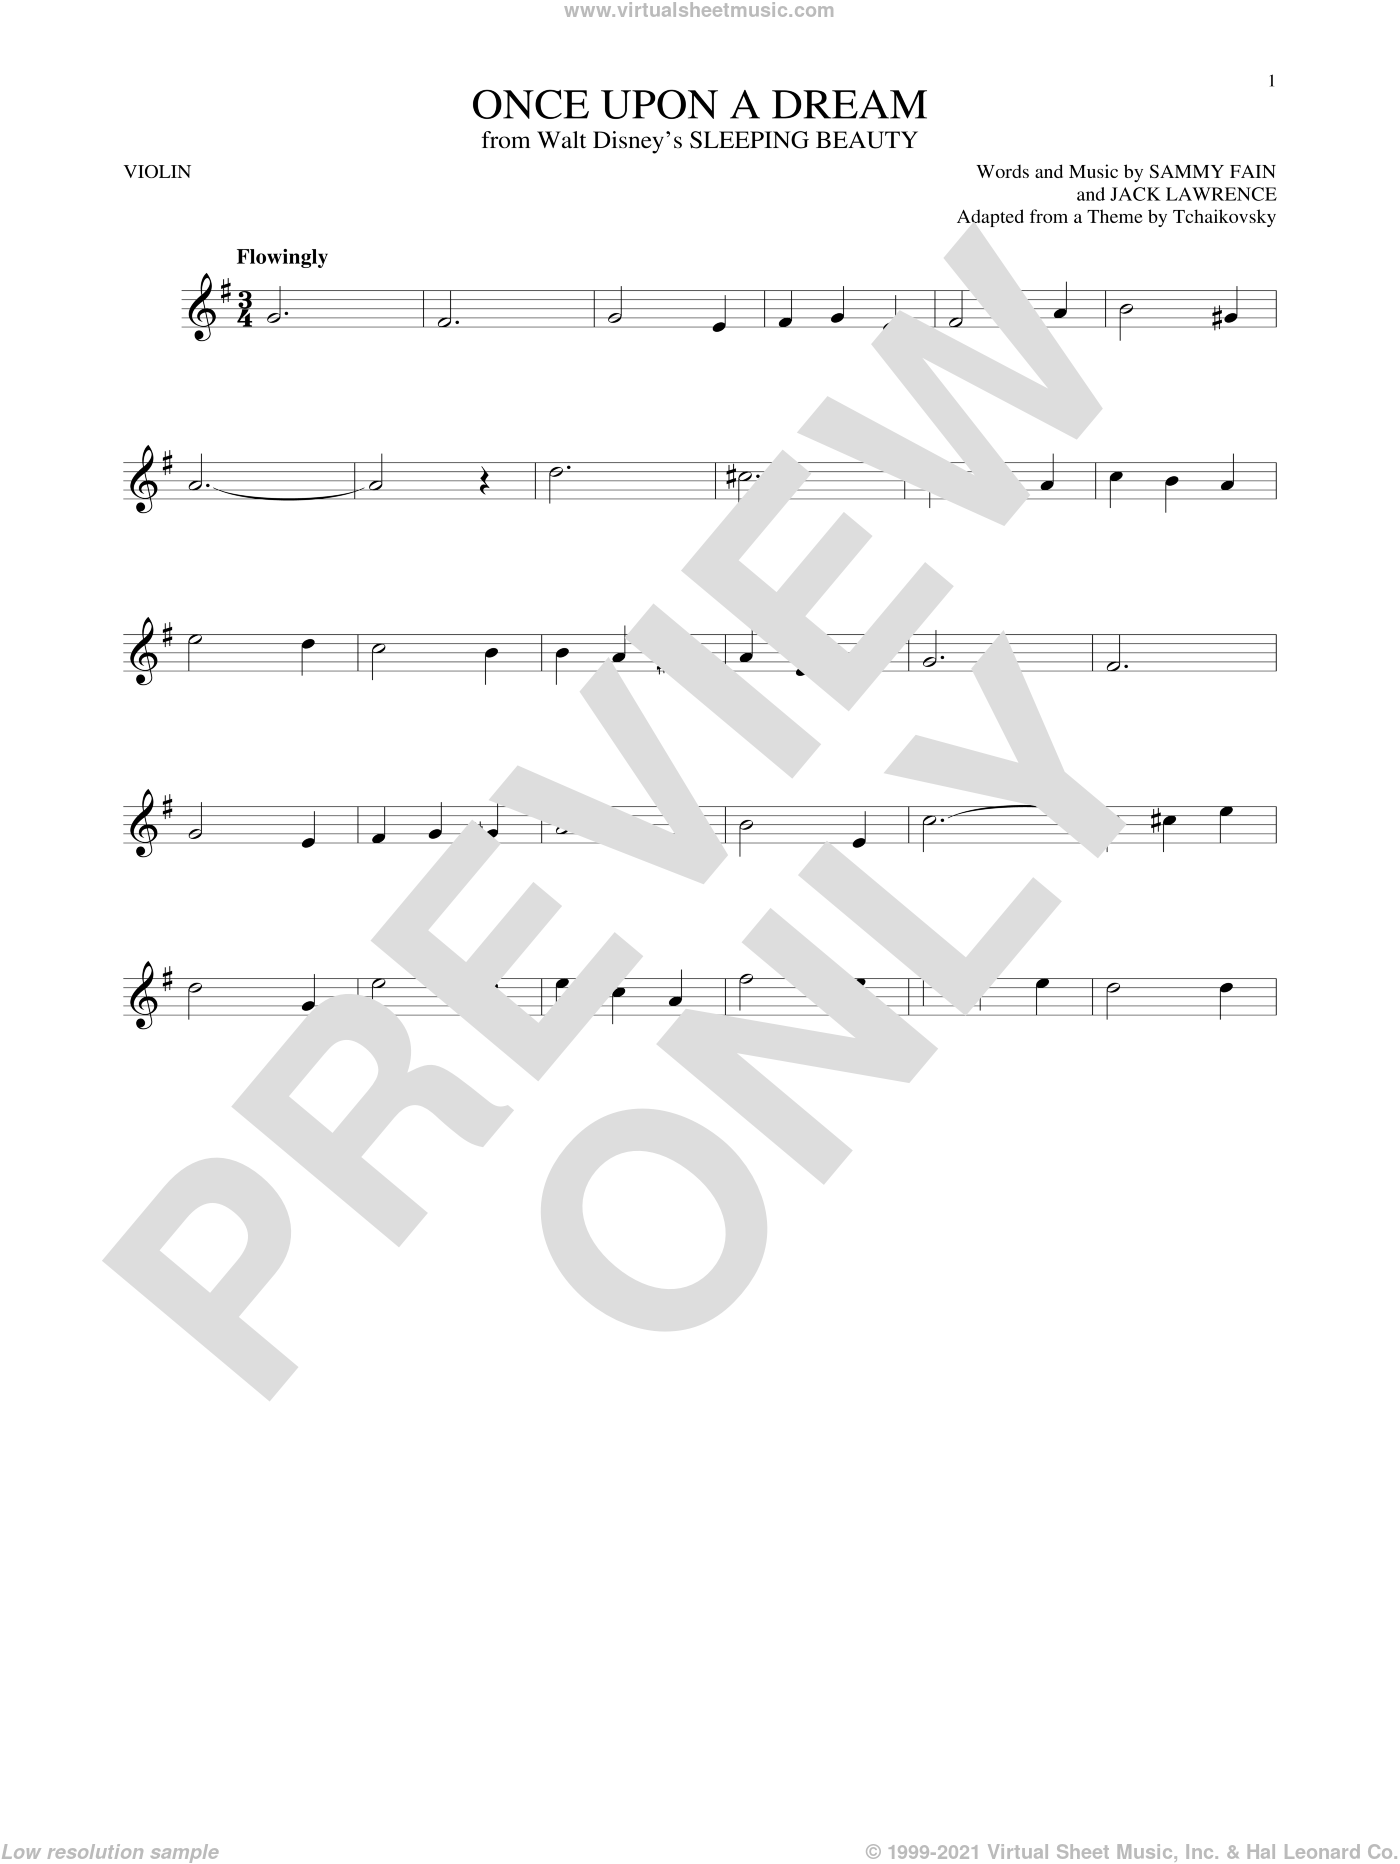 Once Upon A Dream sheet music for violin solo by Sammy Fain and Jack Lawrence, intermediate skill level